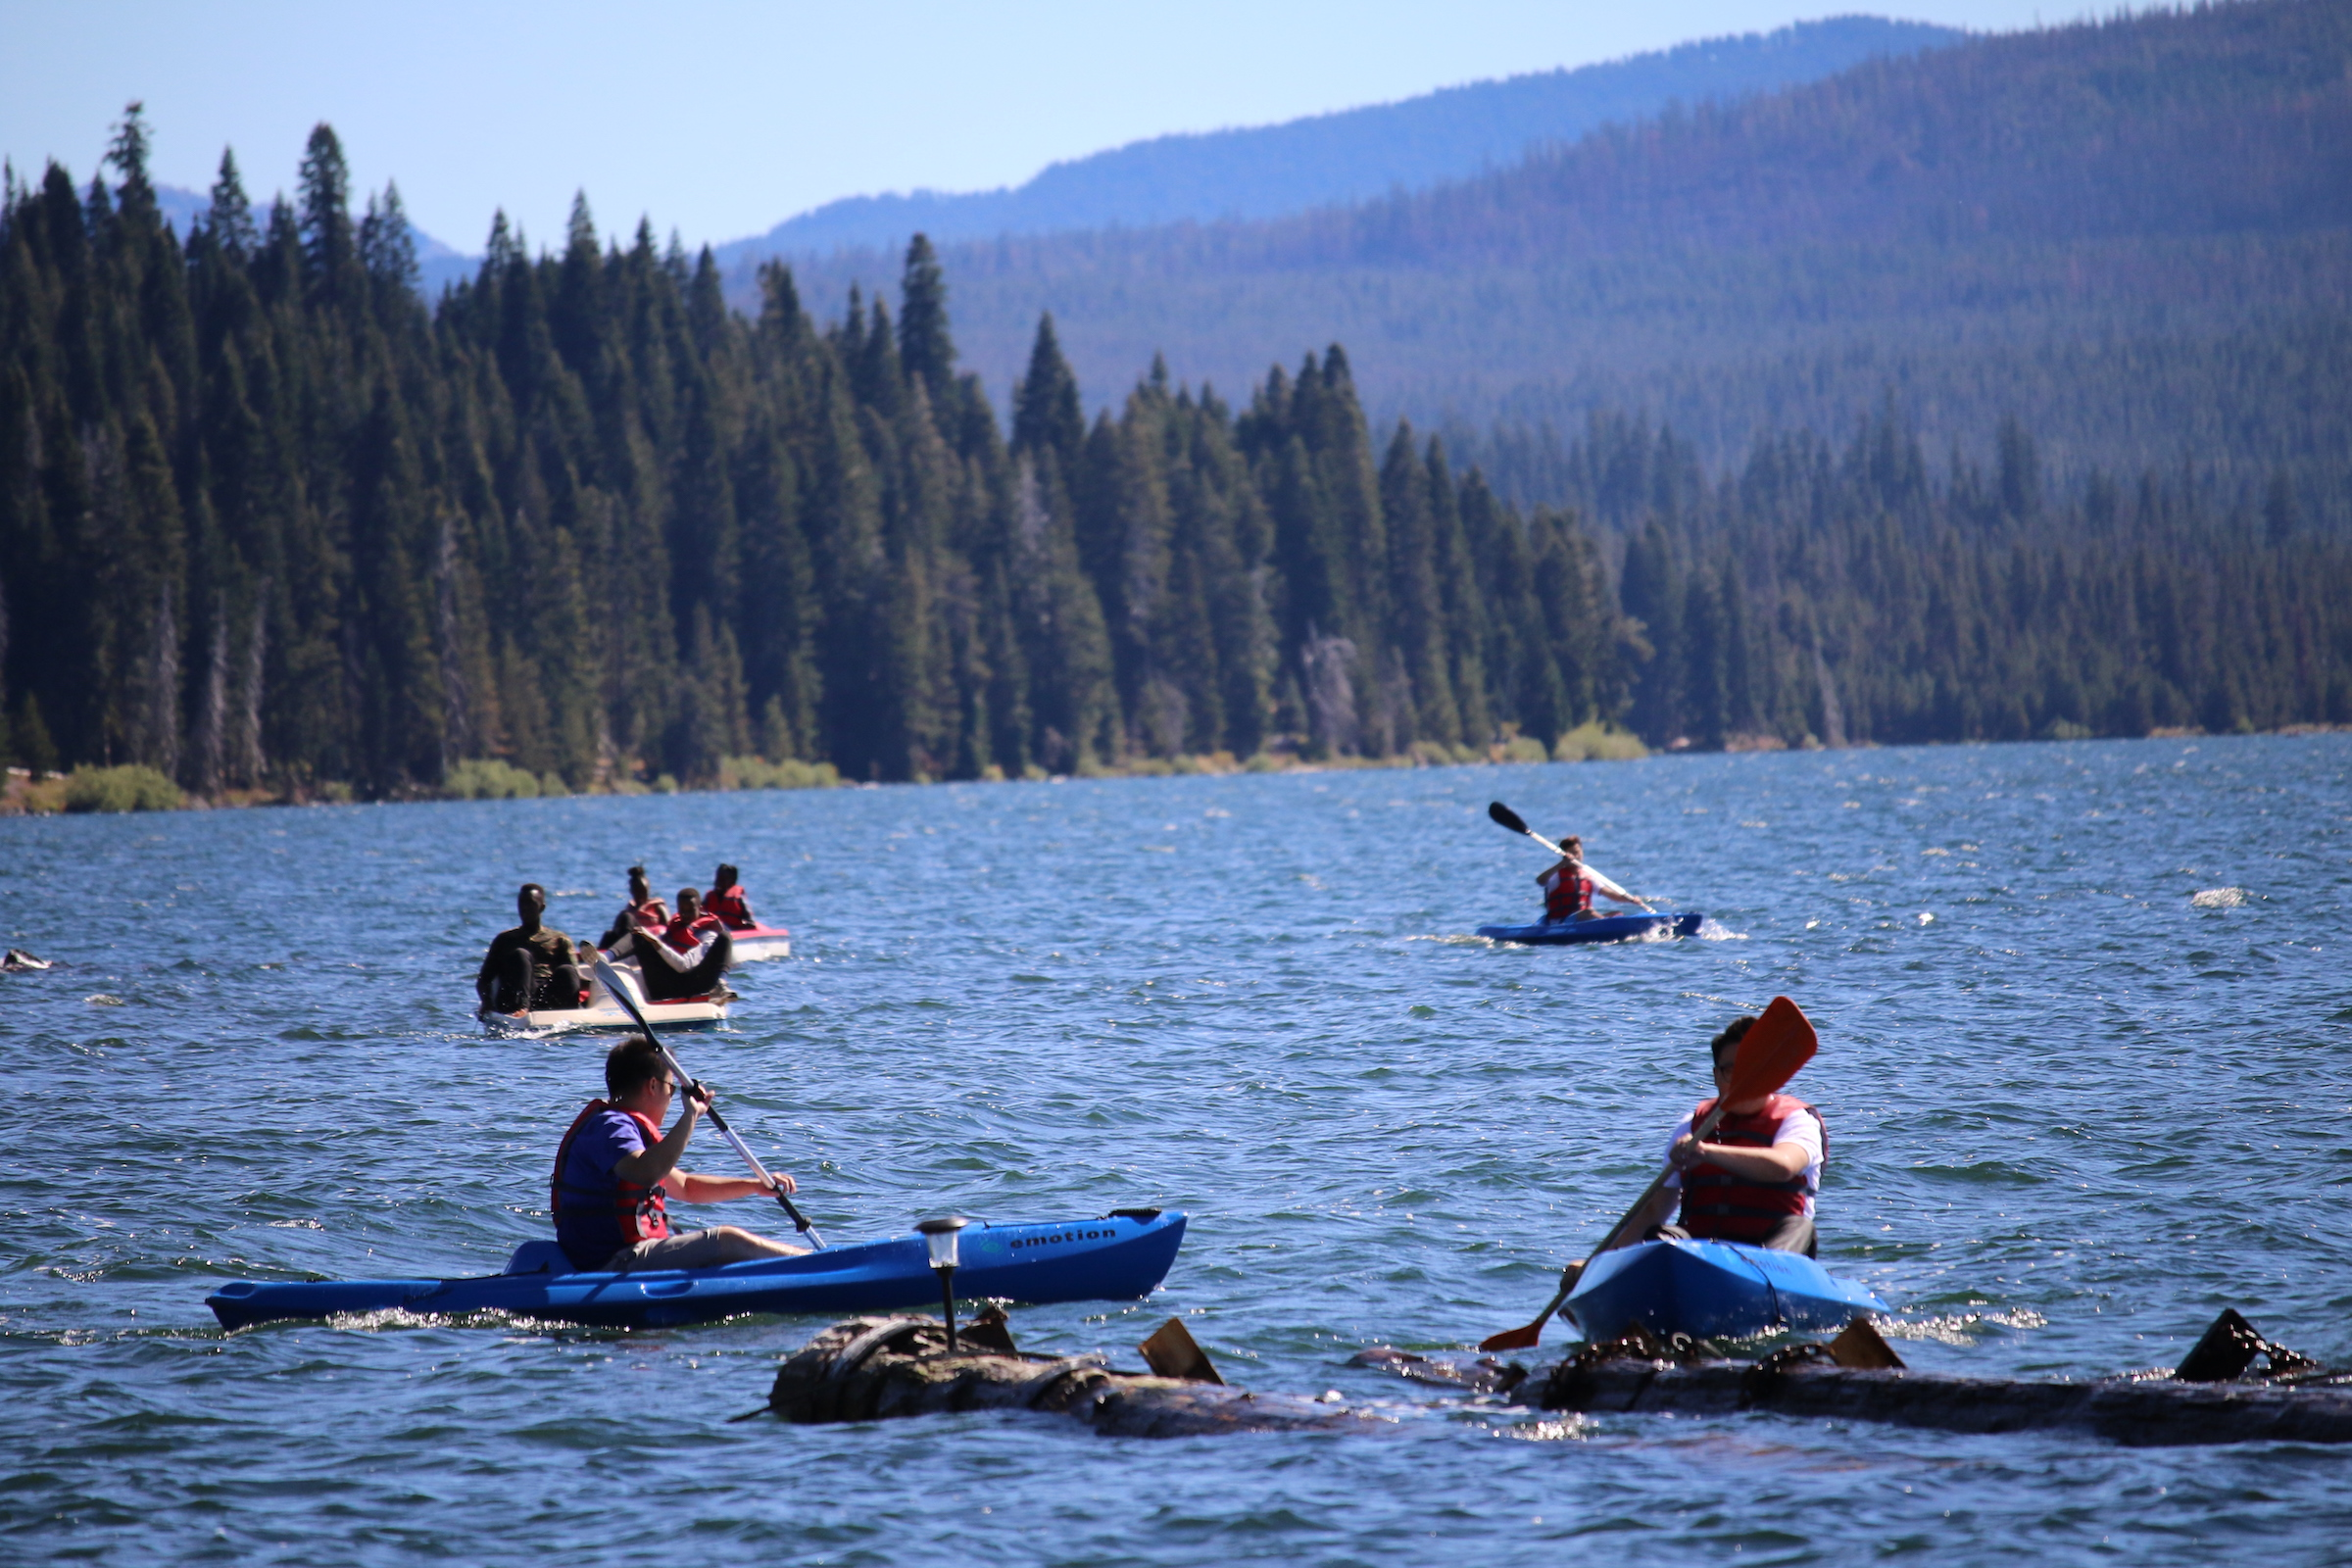 diamond lake trip, christian boarding school students, enjoying a day to play